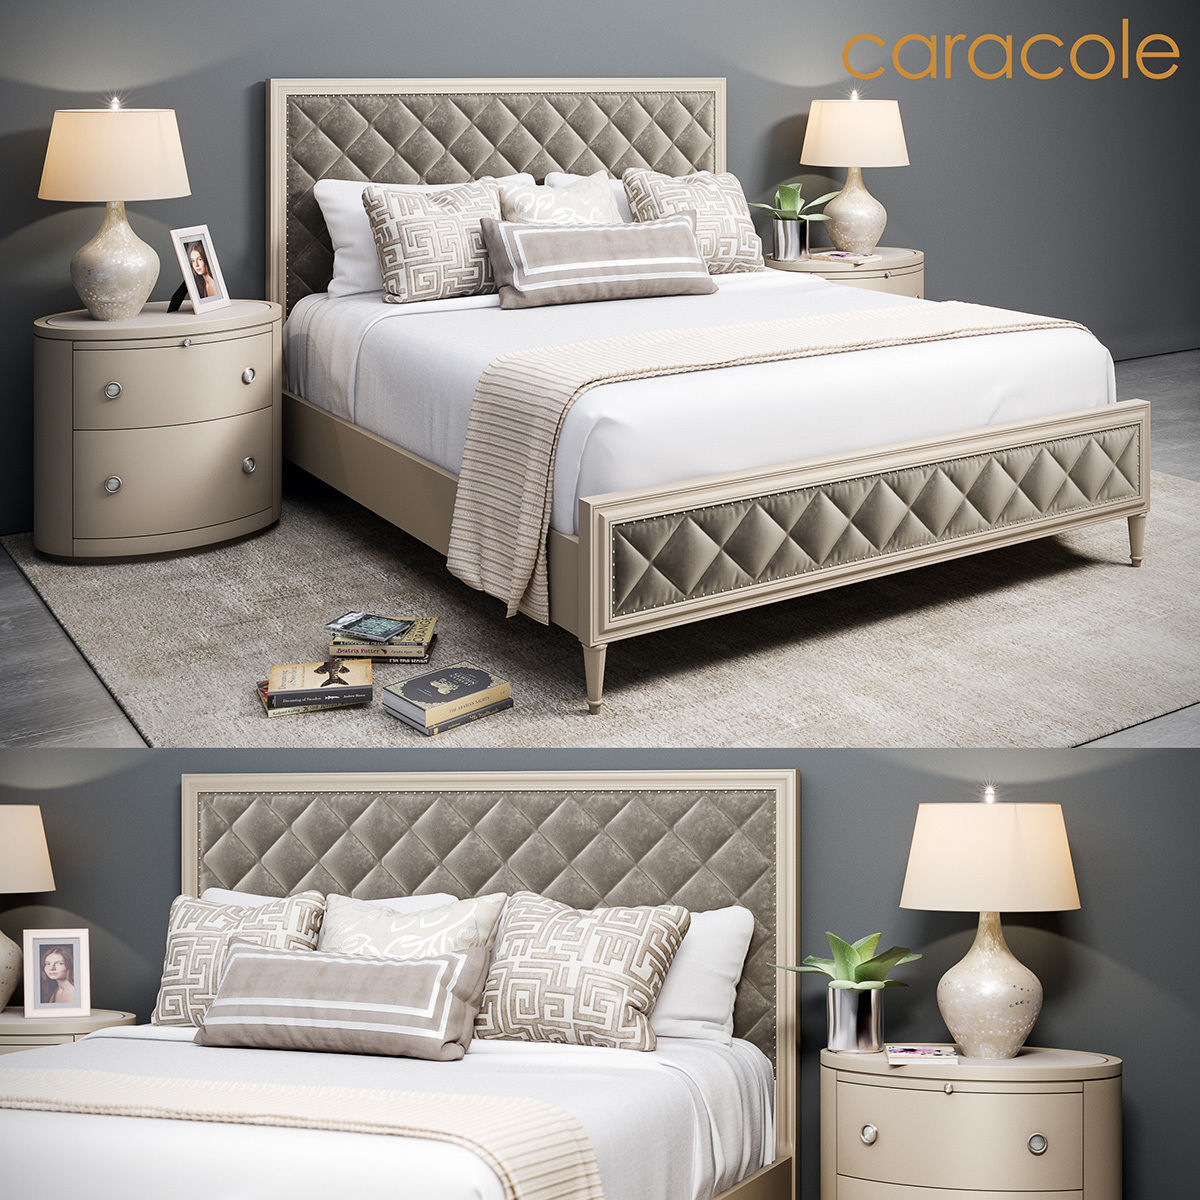 Caracole Bed